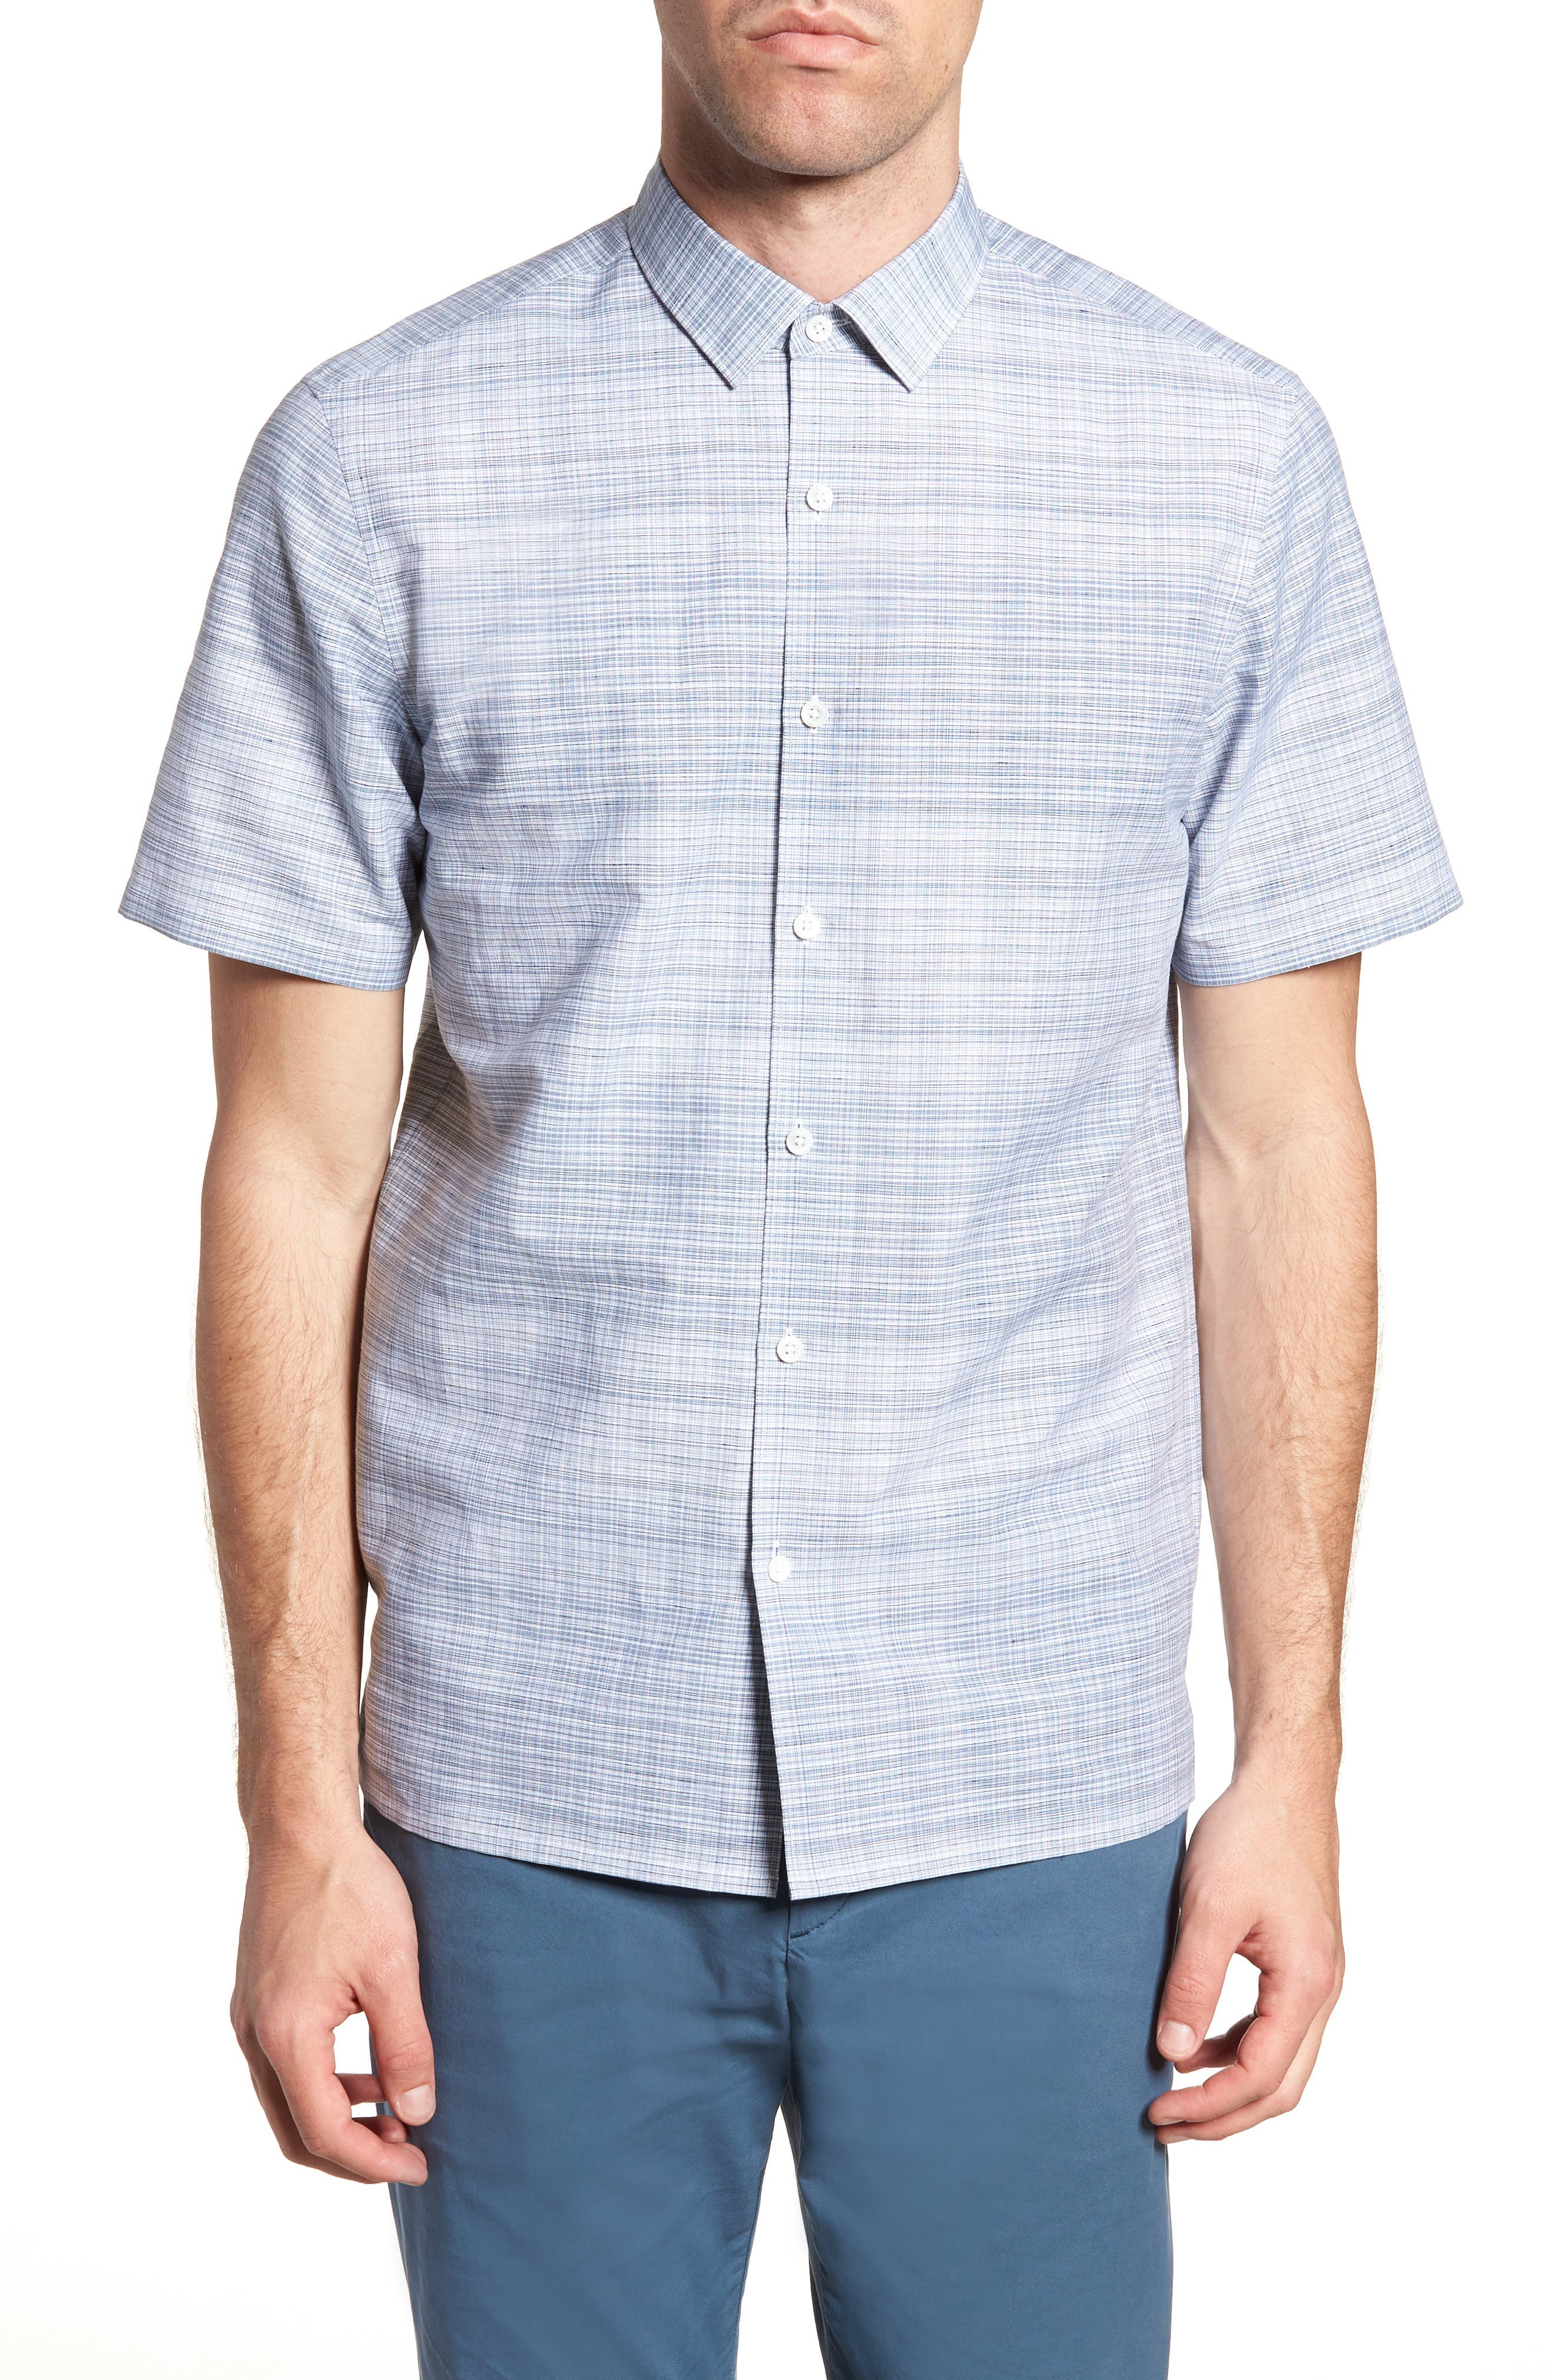 Murray Trim Fit Print Woven Shirt,                         Main,                         color, 400